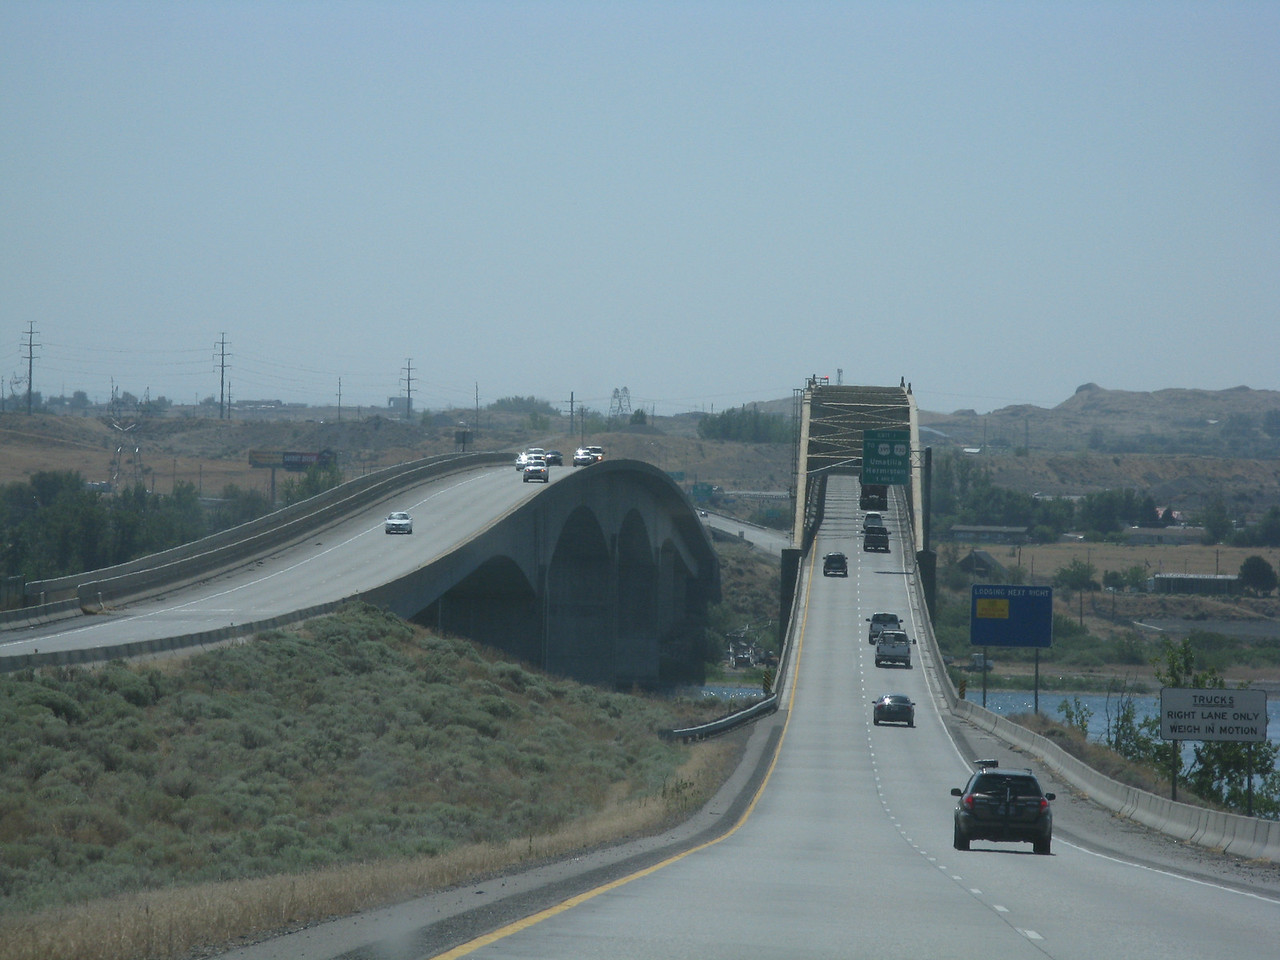 We departed Edmonds at about 8 a.m on Friday, August 13.  After driving east on Interstate 90, we headed southeast on I-82 towards eastern Oregon.  Here is the approach to the McNary Bridge that crosses the Columbia River on Interstate 82 at Umatilla, Oregon.